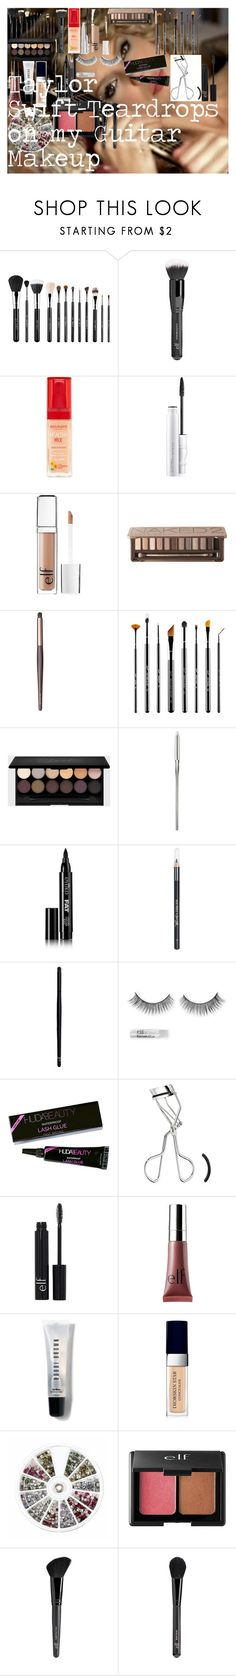 """Taylor Swift-Teardrops on my Guitar Makeup"" by oroartye-1 on Polyvore featuring beauty, Sigma, Old Navy, Bourjois, MAC Cosmetics, e.l.f., Urban Decay, Eyeko, Barry M and Charlotte Russe"